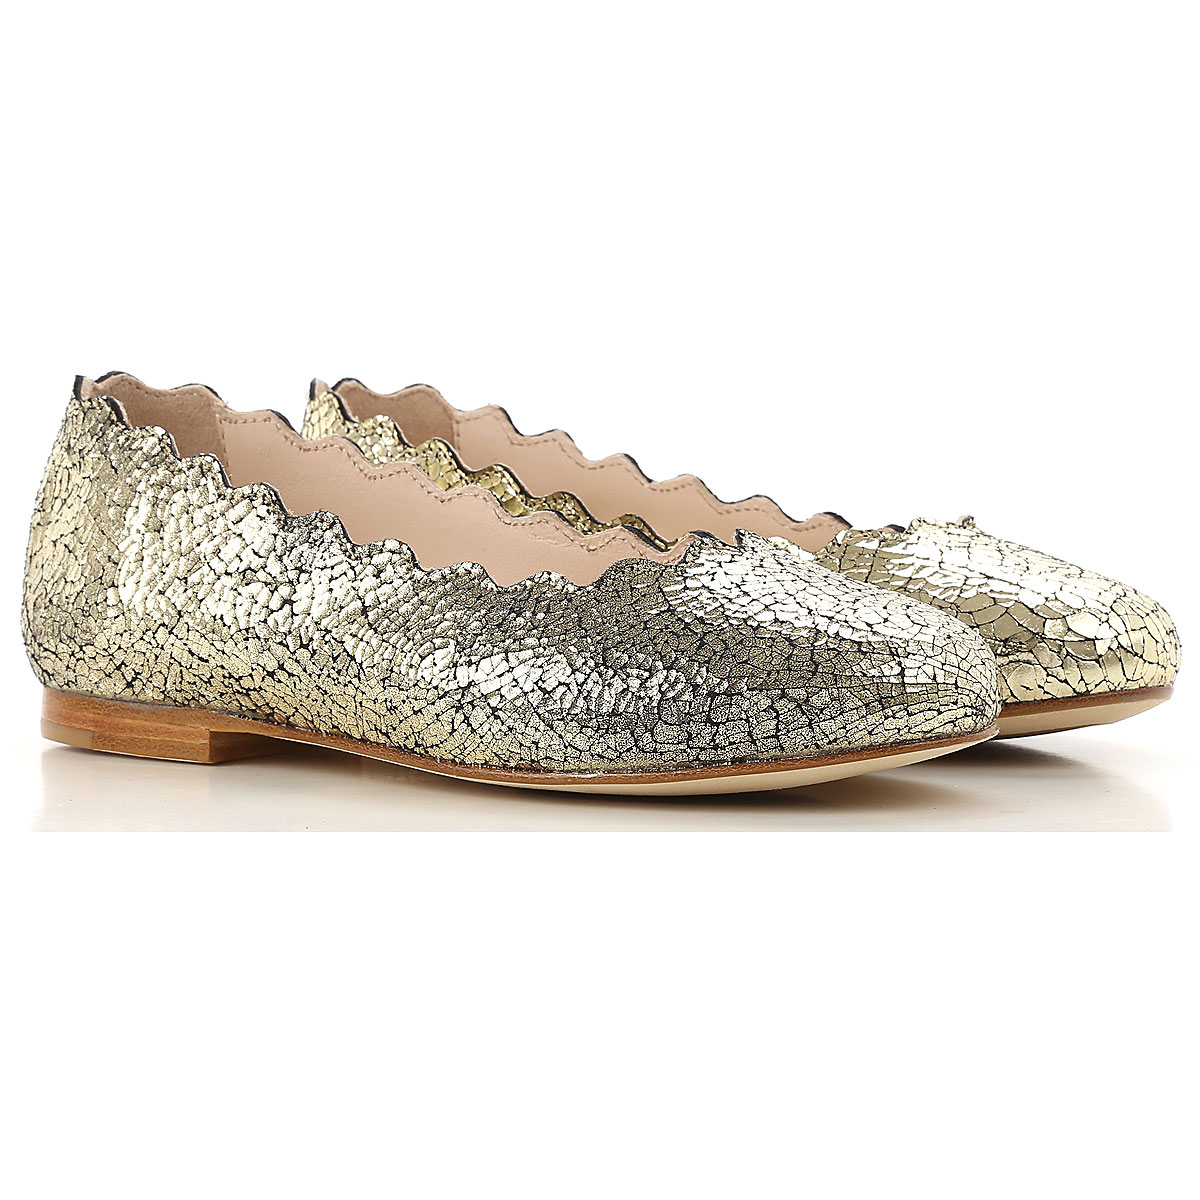 Image of Chloe Kids Shoes for Girls, Gold, Leather, 2017, 25 26 27 28 29 30 31 33 34 35